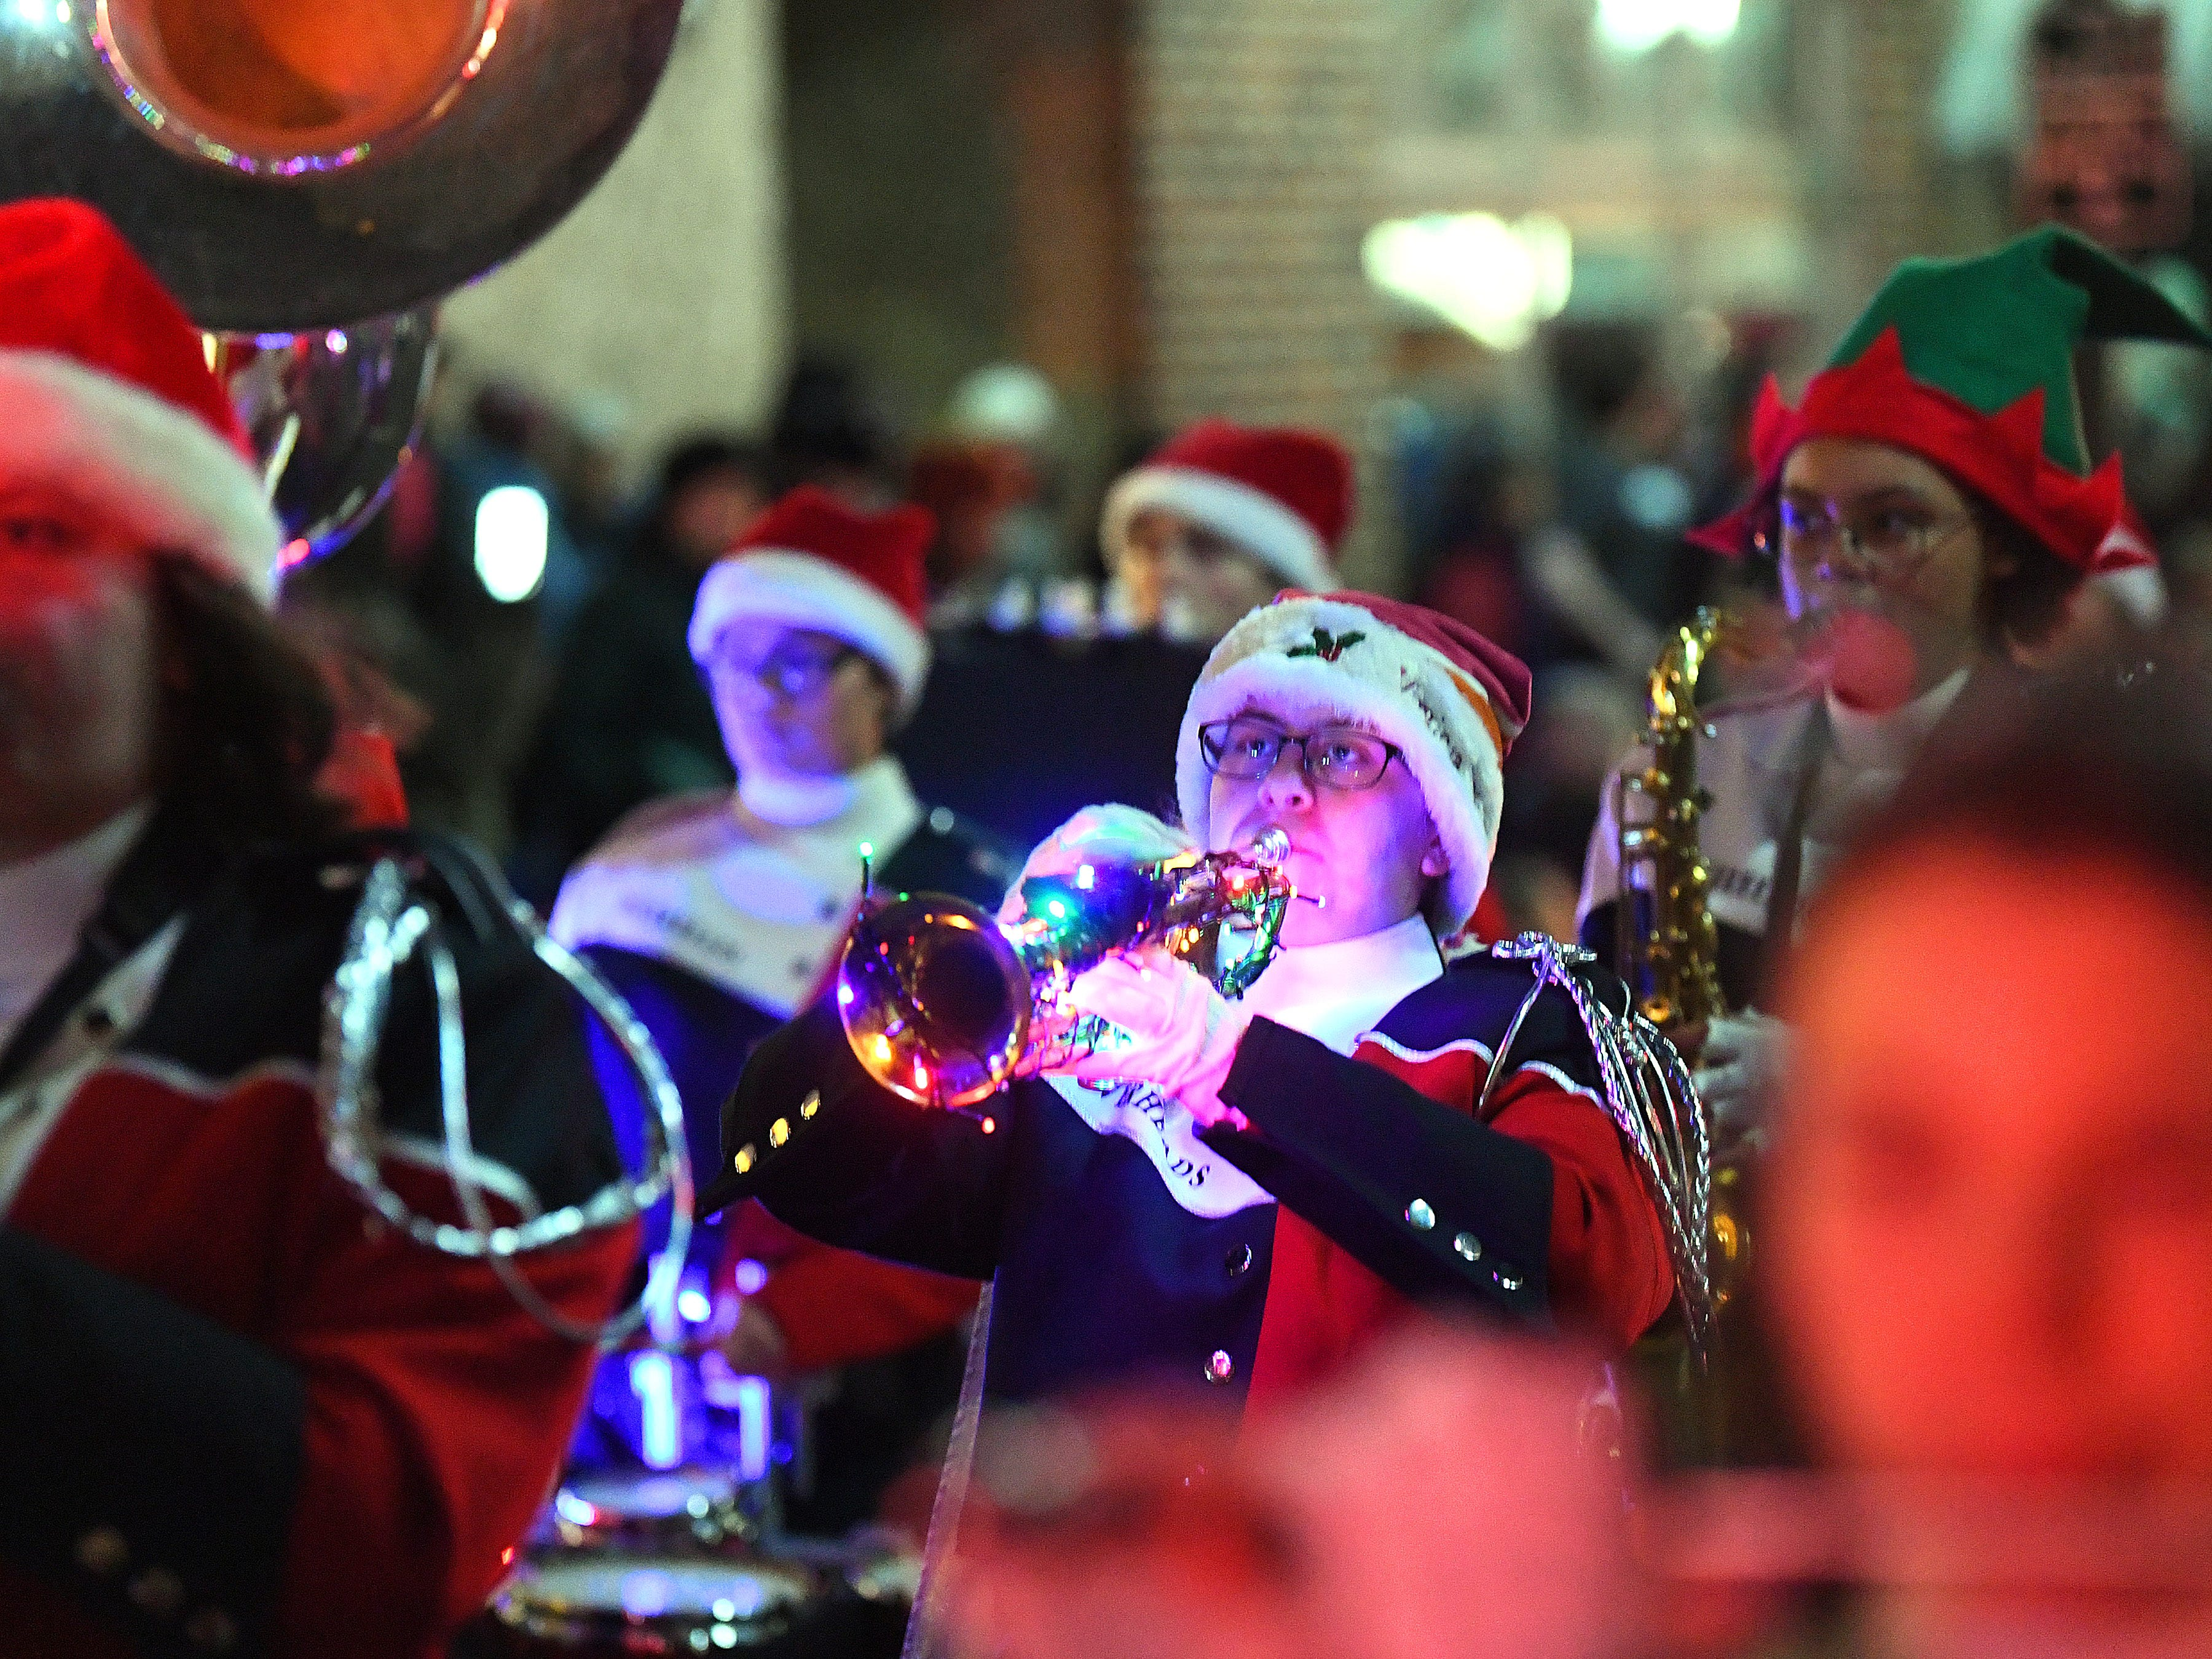 The Riverheads High School marching band performs during the Staunton Christmas Parade on Monday, Nov. 26, 2018.